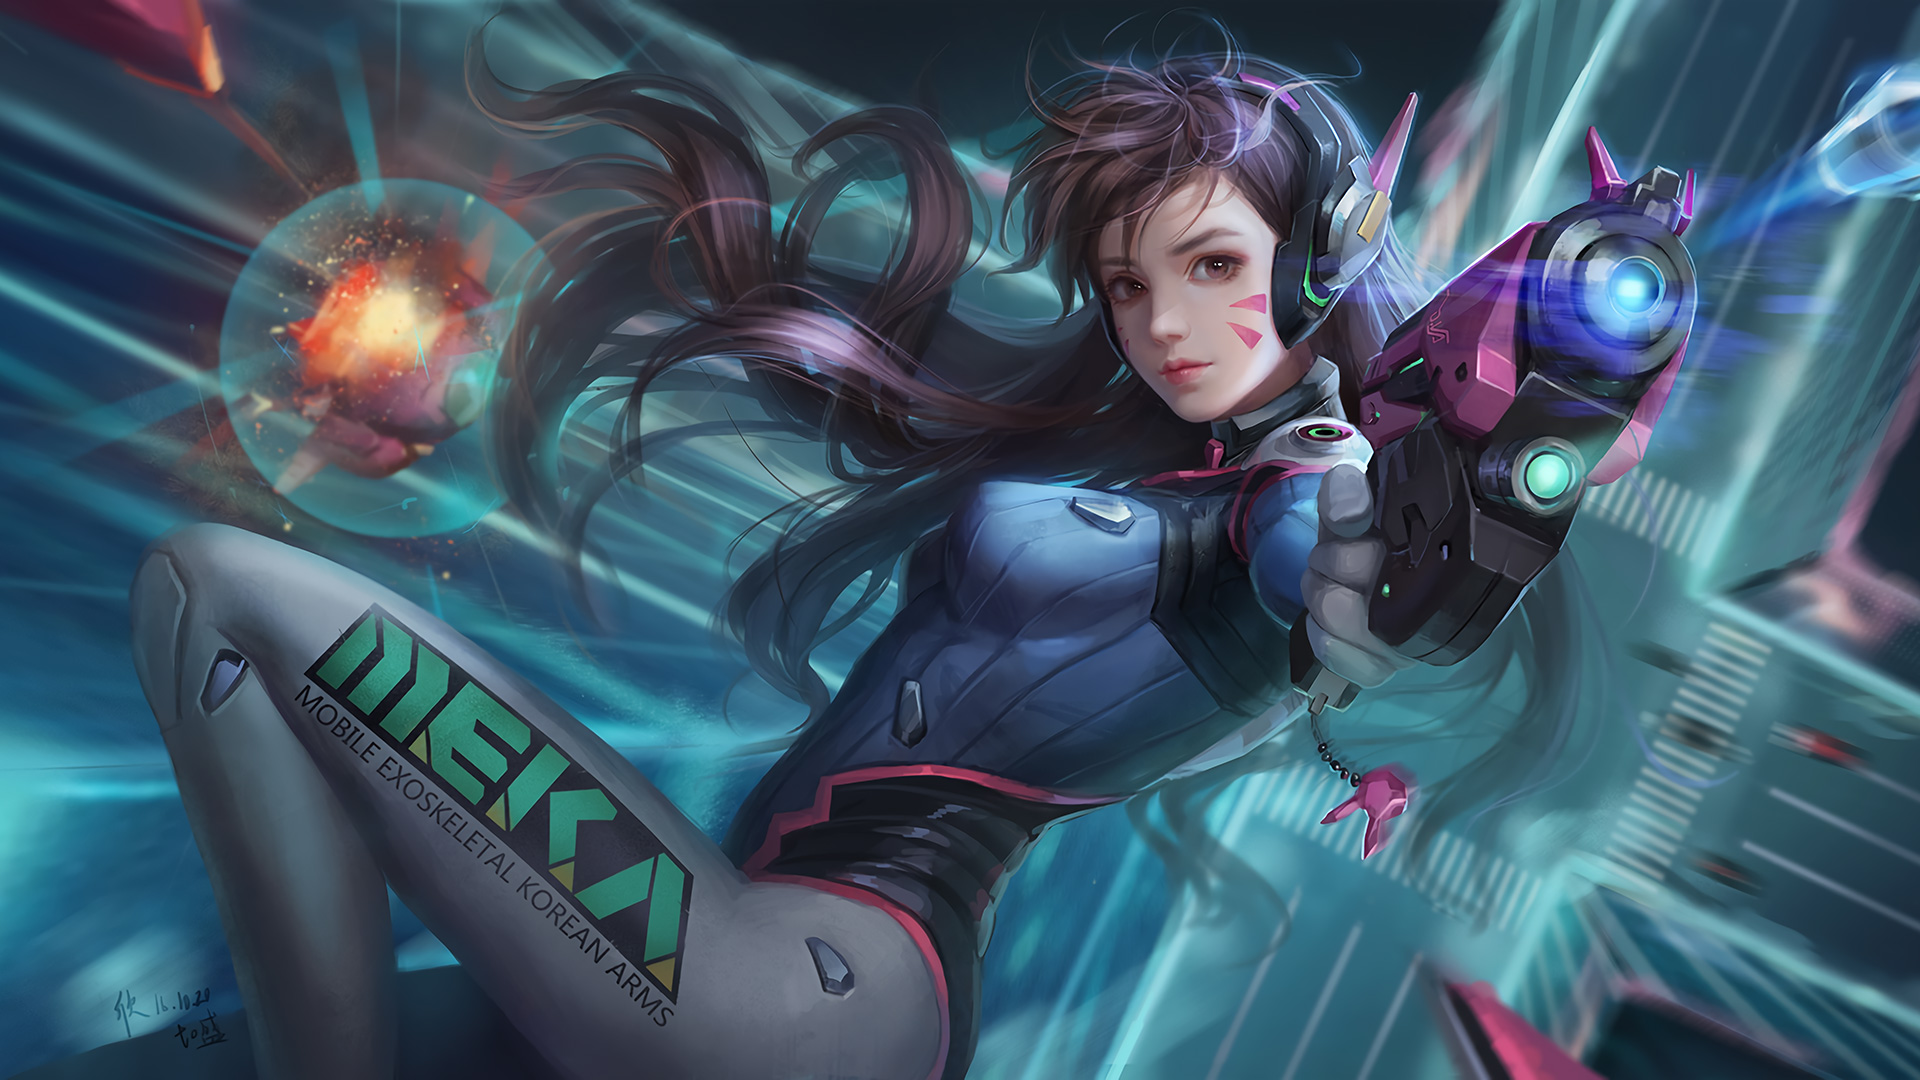 DVa Overwatch Artwork596559428 - DVa Overwatch Artwork - Overwatch, Dva, Artwork